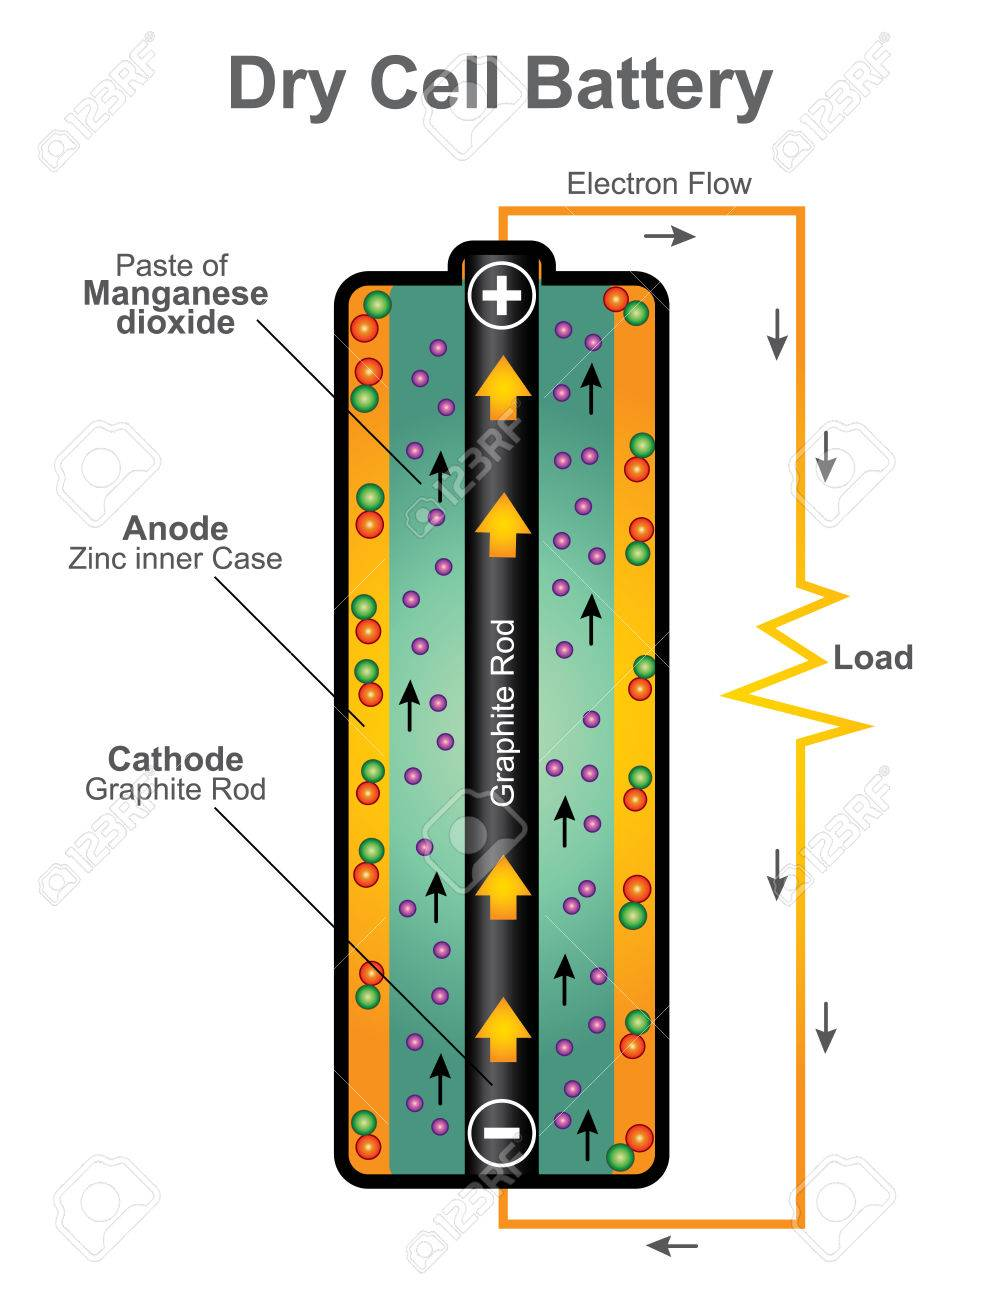 Electrolyte In A Dry Cell Battery Worksheet And Wiring Diagram Of Leclanche Uses Paste With Only Enough Moisture Rh 123rf Com Replacement Chart